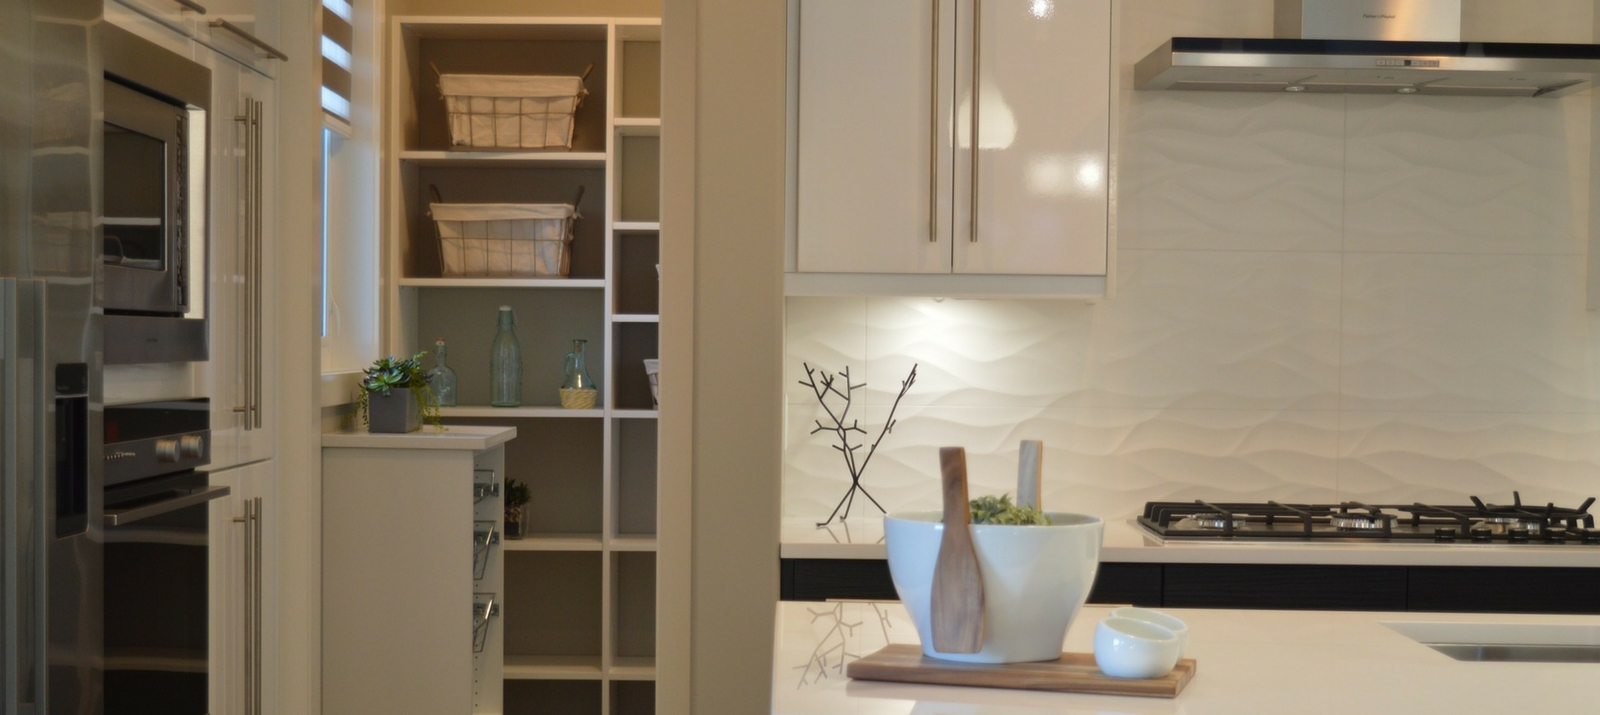 12 Stellar Ways To Organize Your Kitchen Cabinets, Drawers ...